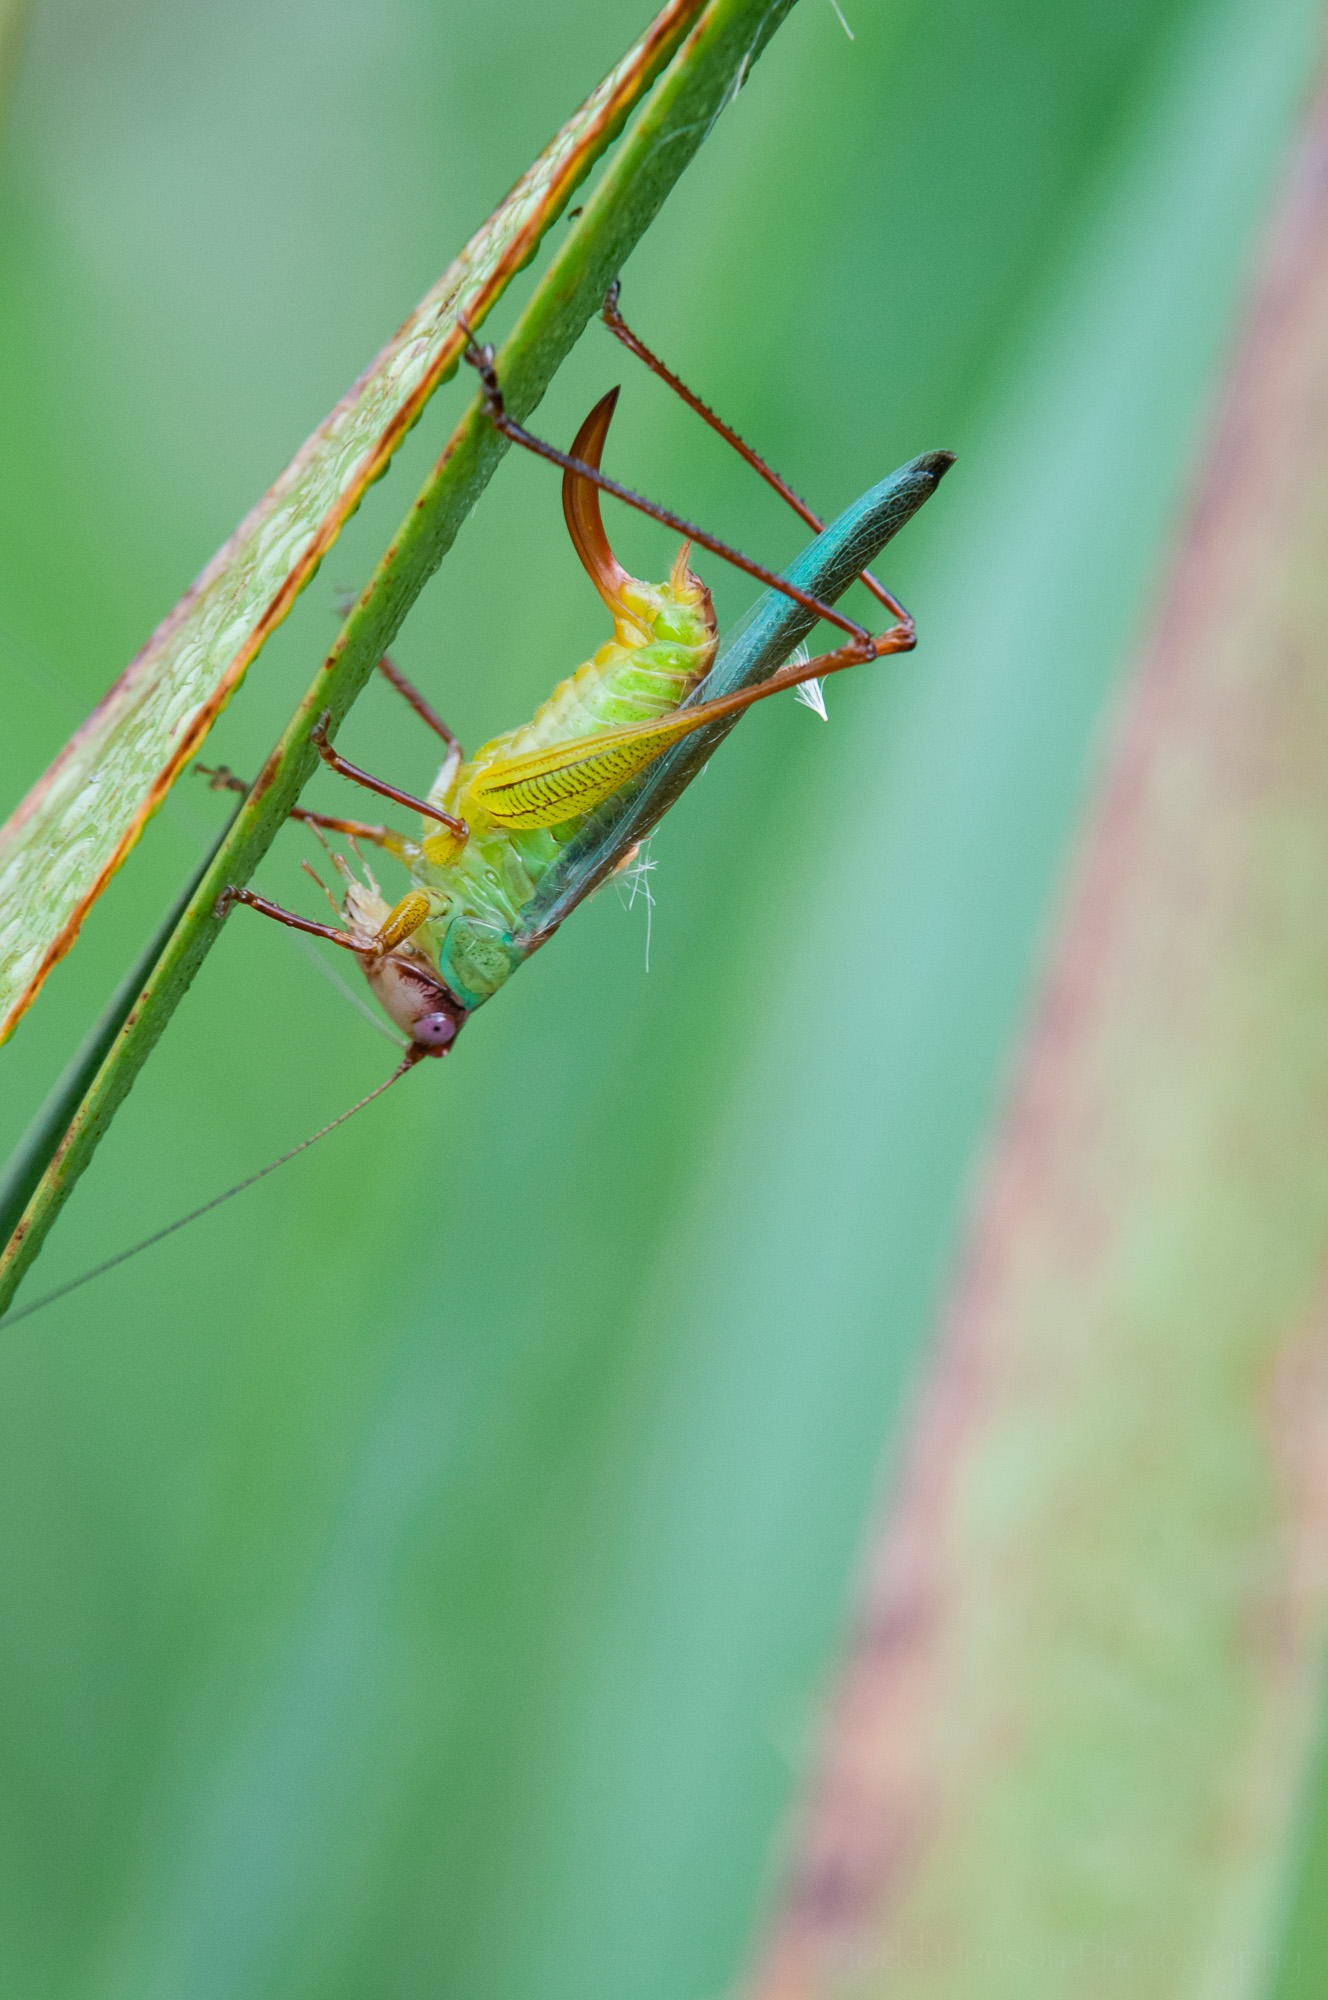 Seventh of a sequence of a katydid cleaning itself.